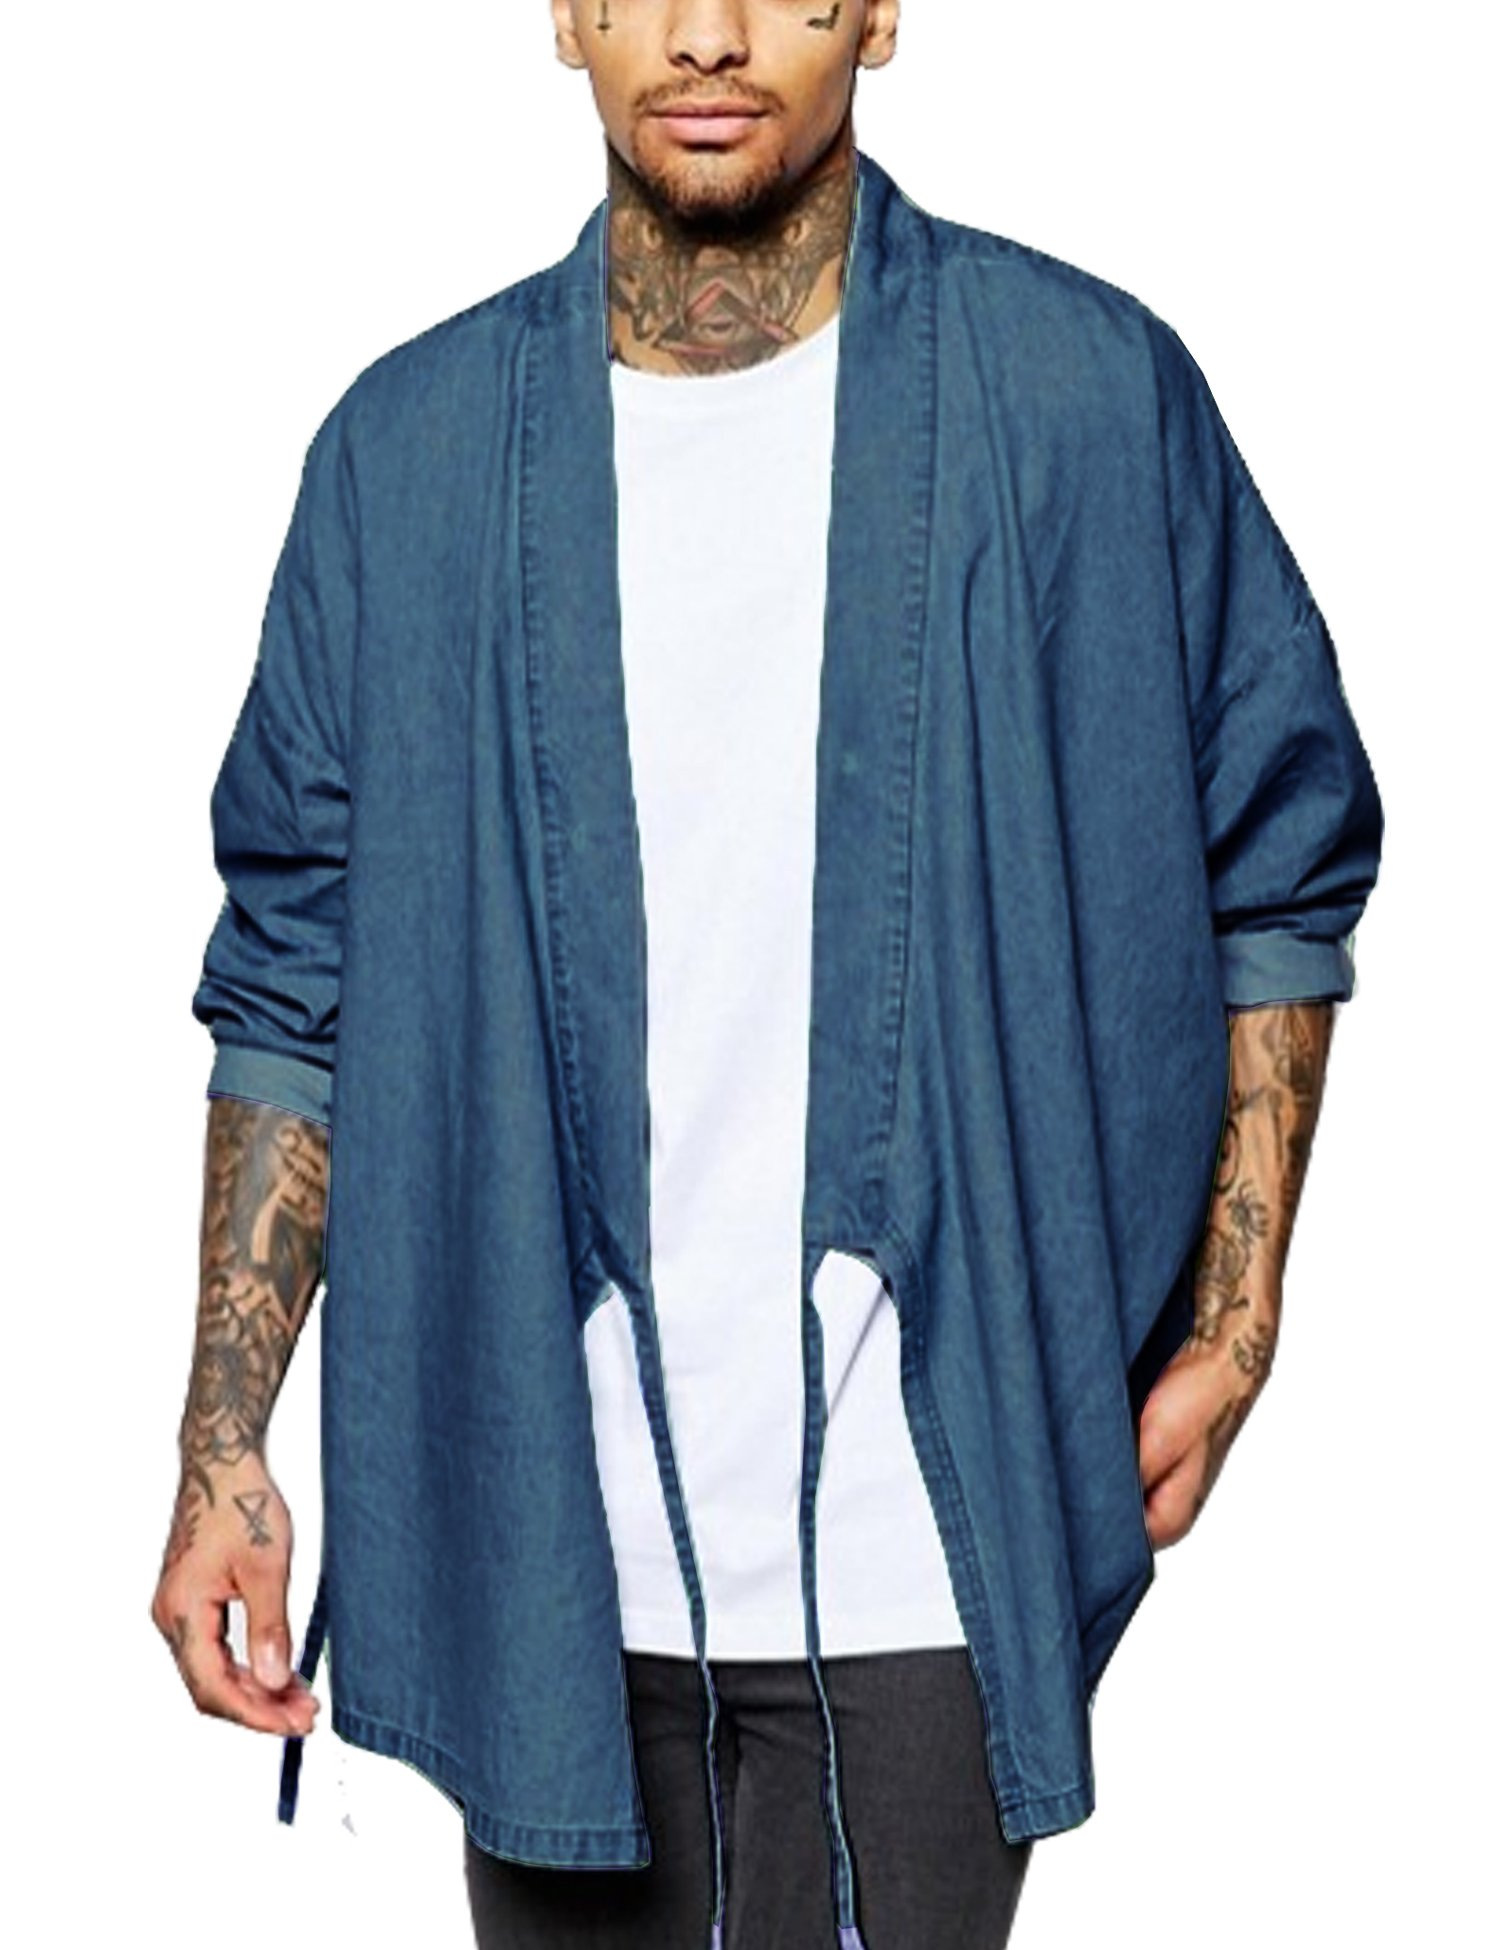 COOFANDY Men's Kimono Casual Long Sleeve Loose Fit Denium Open Front Coat Cloak,Blue,XX-Large by COOFANDY